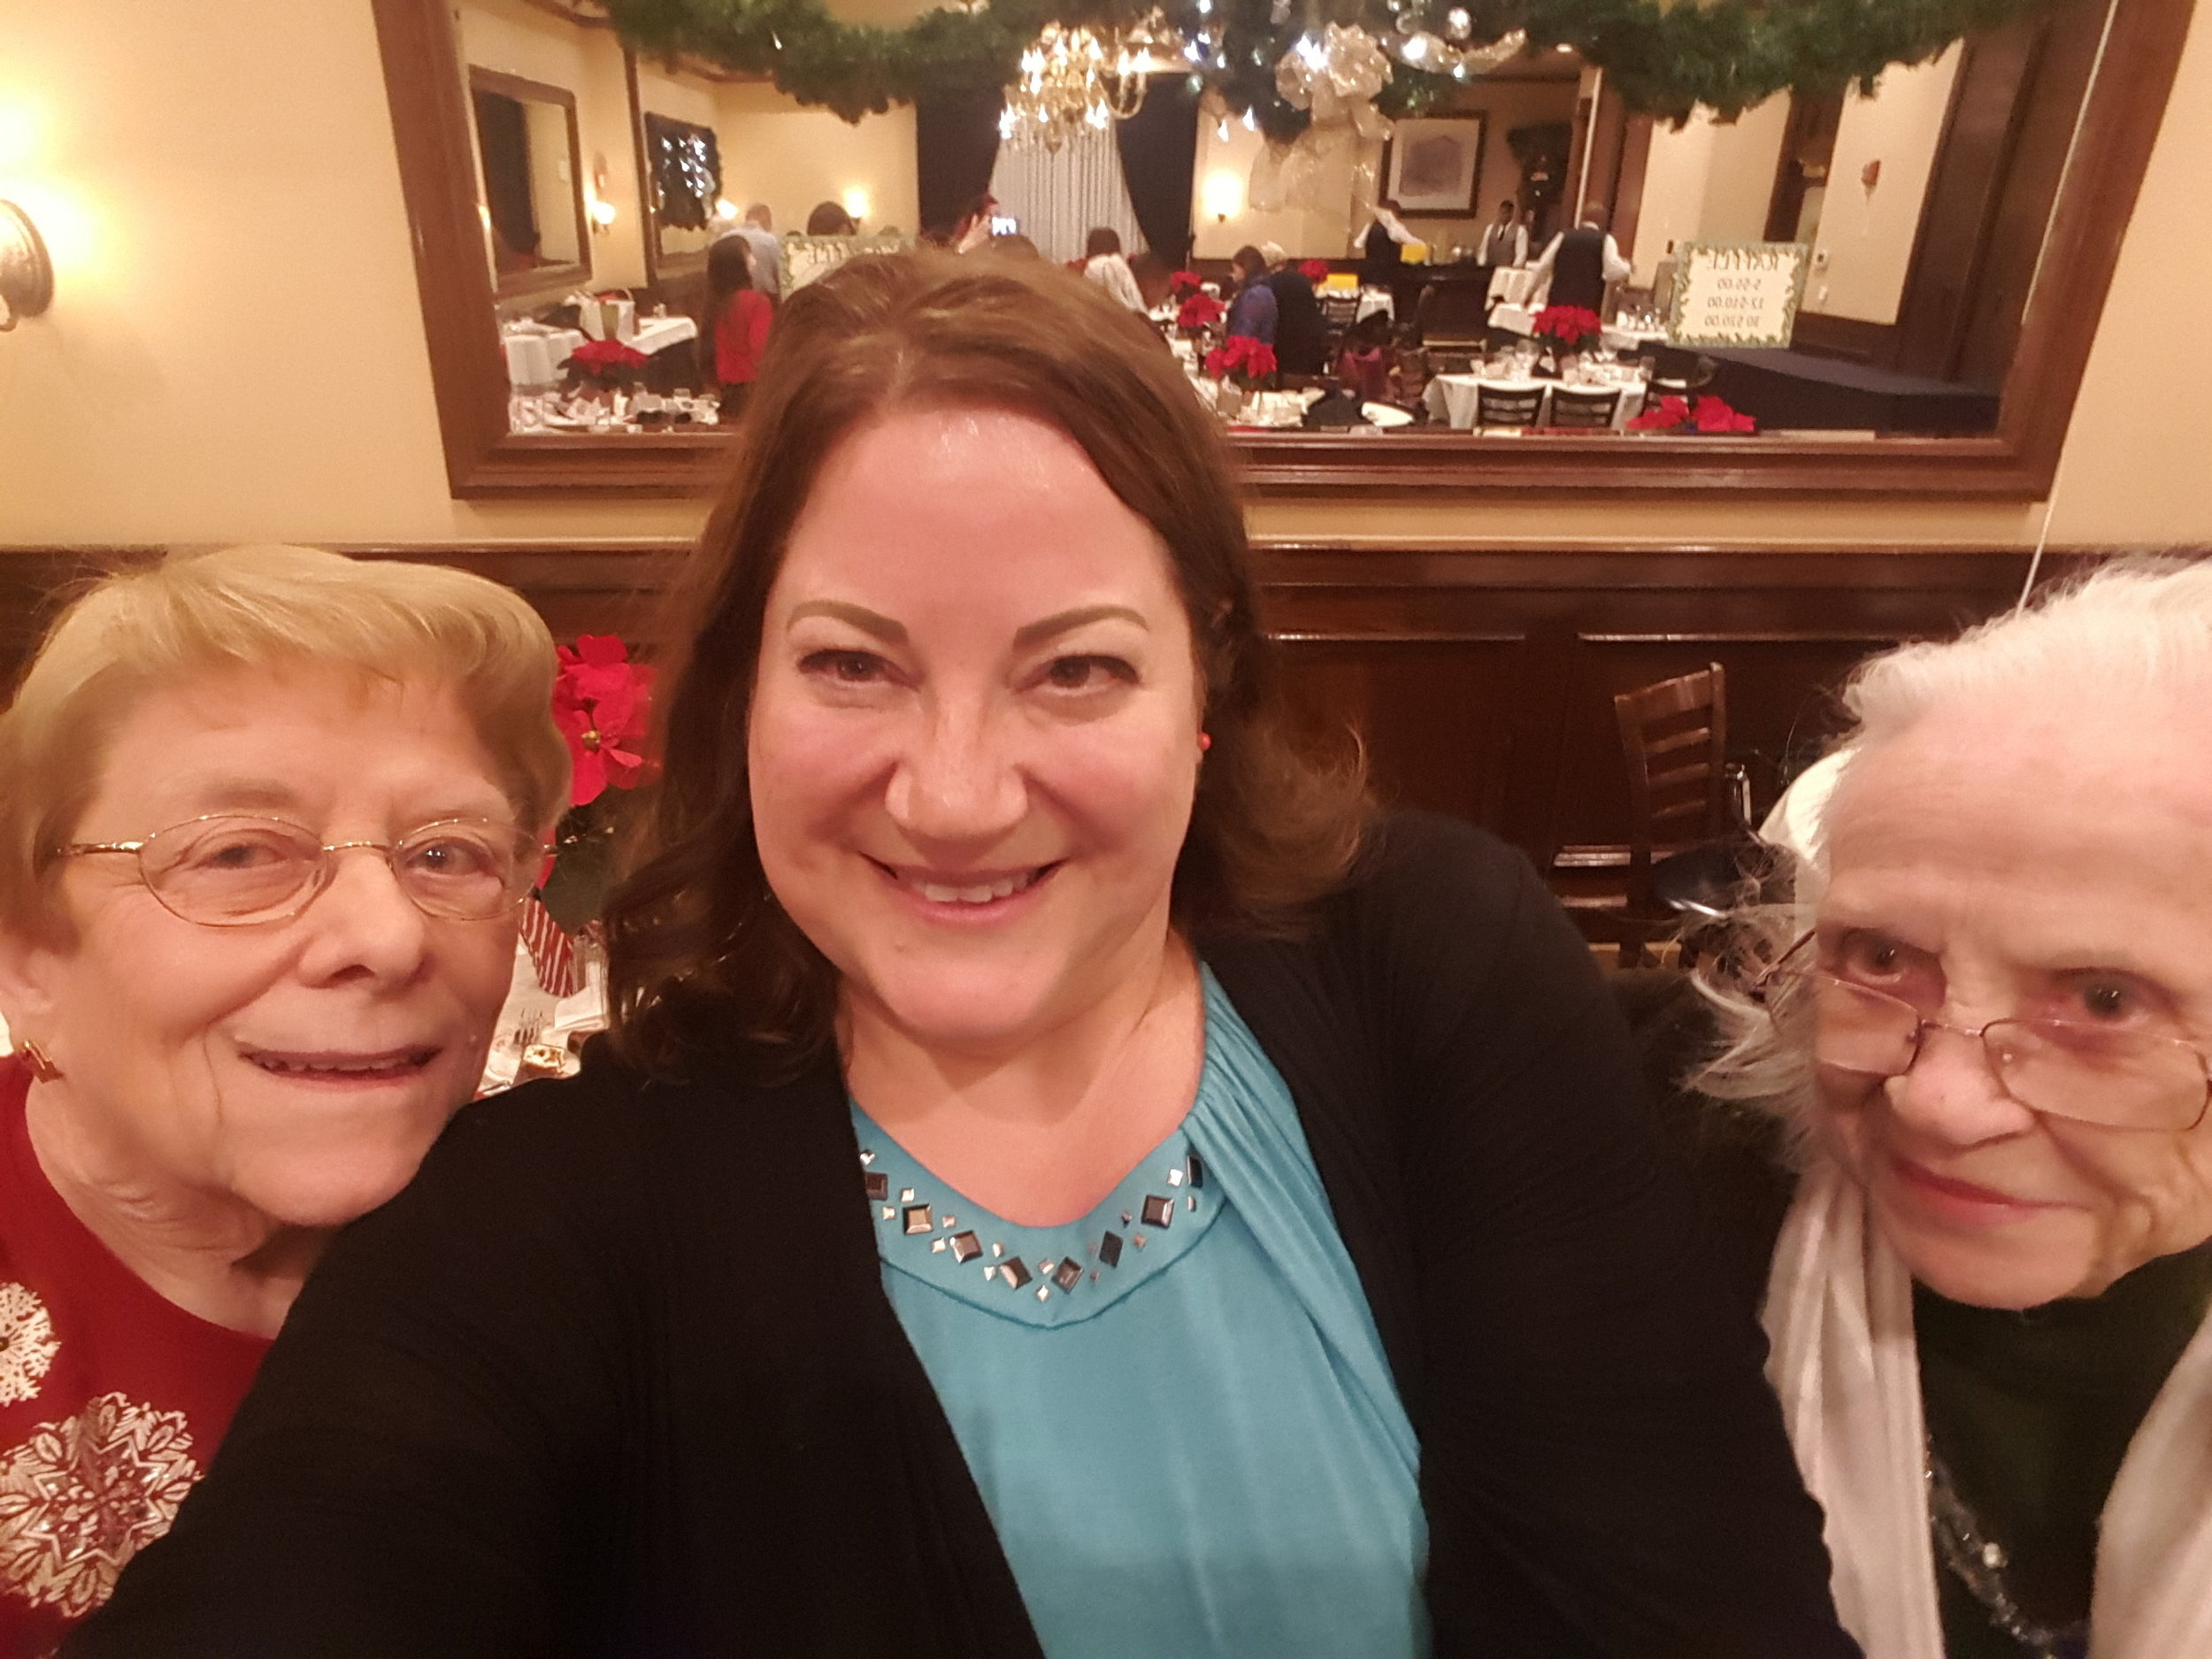 Three years ago, our long-time members, Sally Shaw (right) and Pat Angelucci (left), pitched the idea of a Bingo fundraiser for MCCC Scholarships. On Dec 9th, CMC raised more than the $2,ooo goal! President Becky Shoulberg credits CMC's renewed involvement with Chamber of Commerce & King of Prussia BID. $4,000 of prizes and raffles were donated by area stores, hotels, restaurants & more!